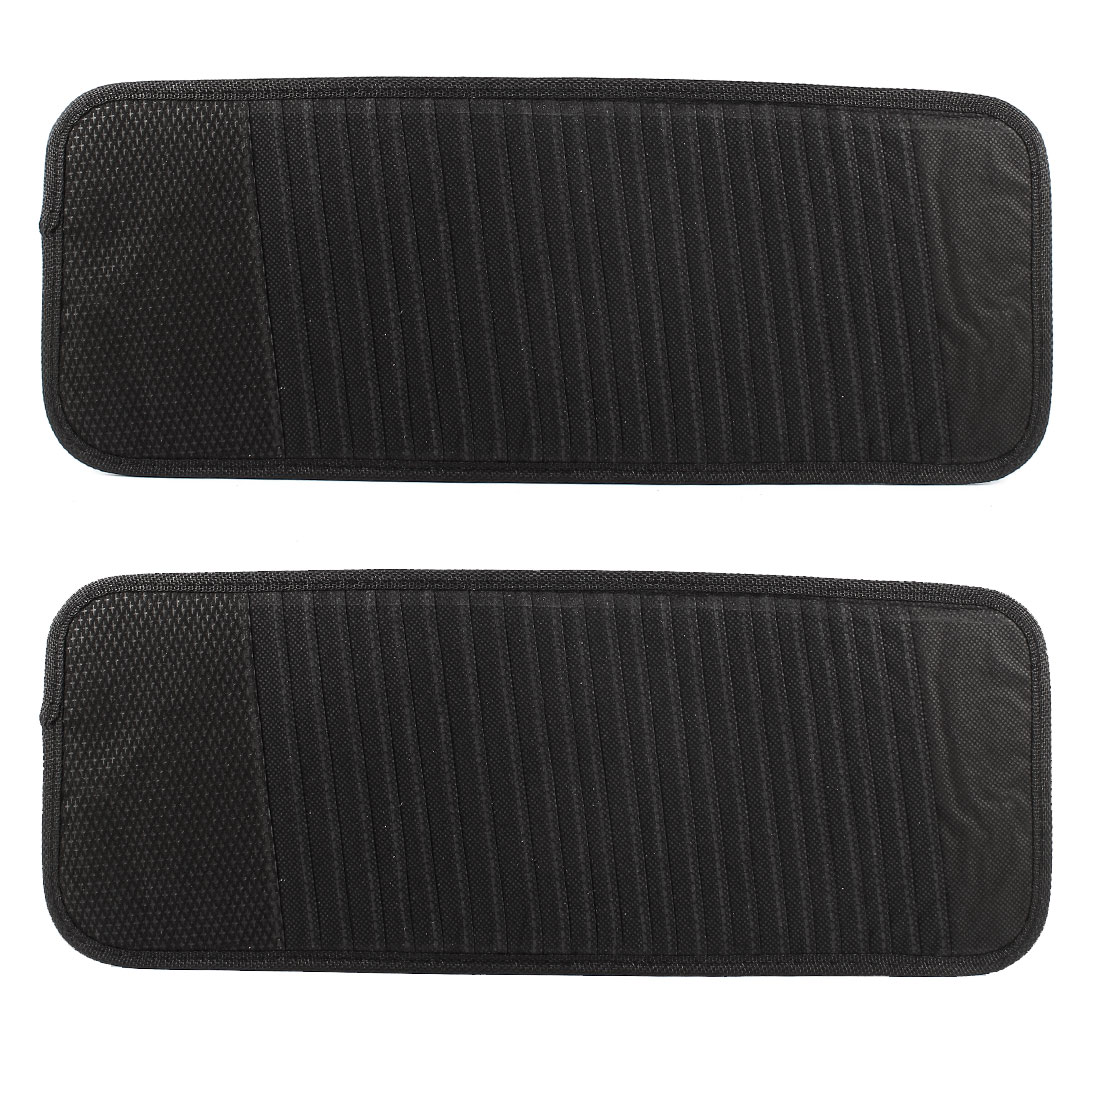 Auto Car Sun Visor 24 Disc CD DVD Clip Holder Storage Case Organizer 2pcs